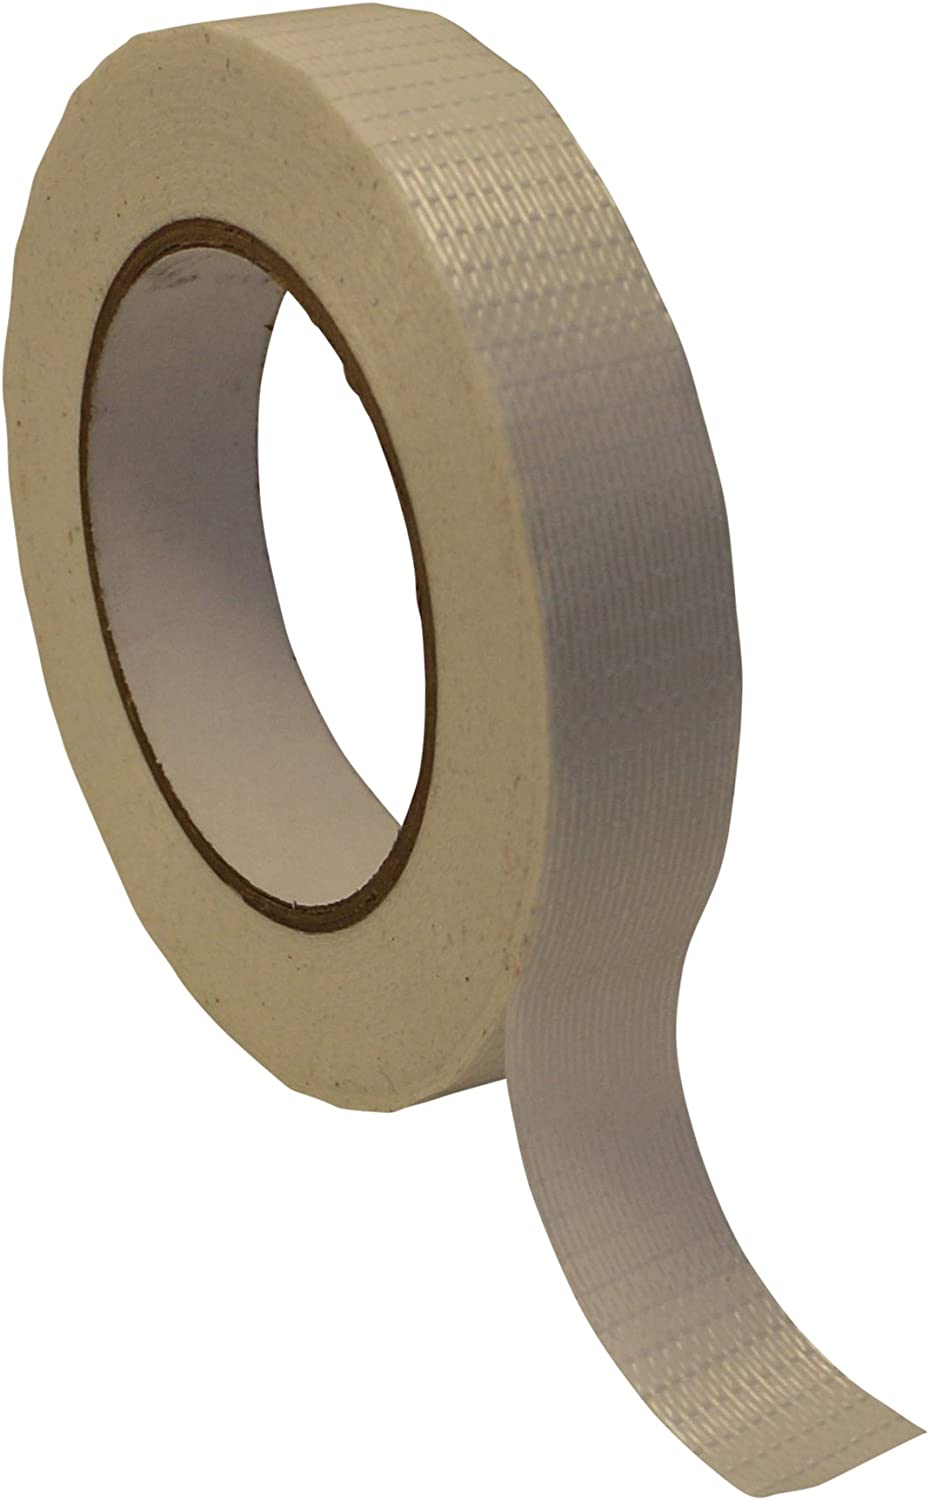 Natural 1-1//2 in x 60 yds. JVCC 762-BD Bi-Directional Filament Strapping Tape